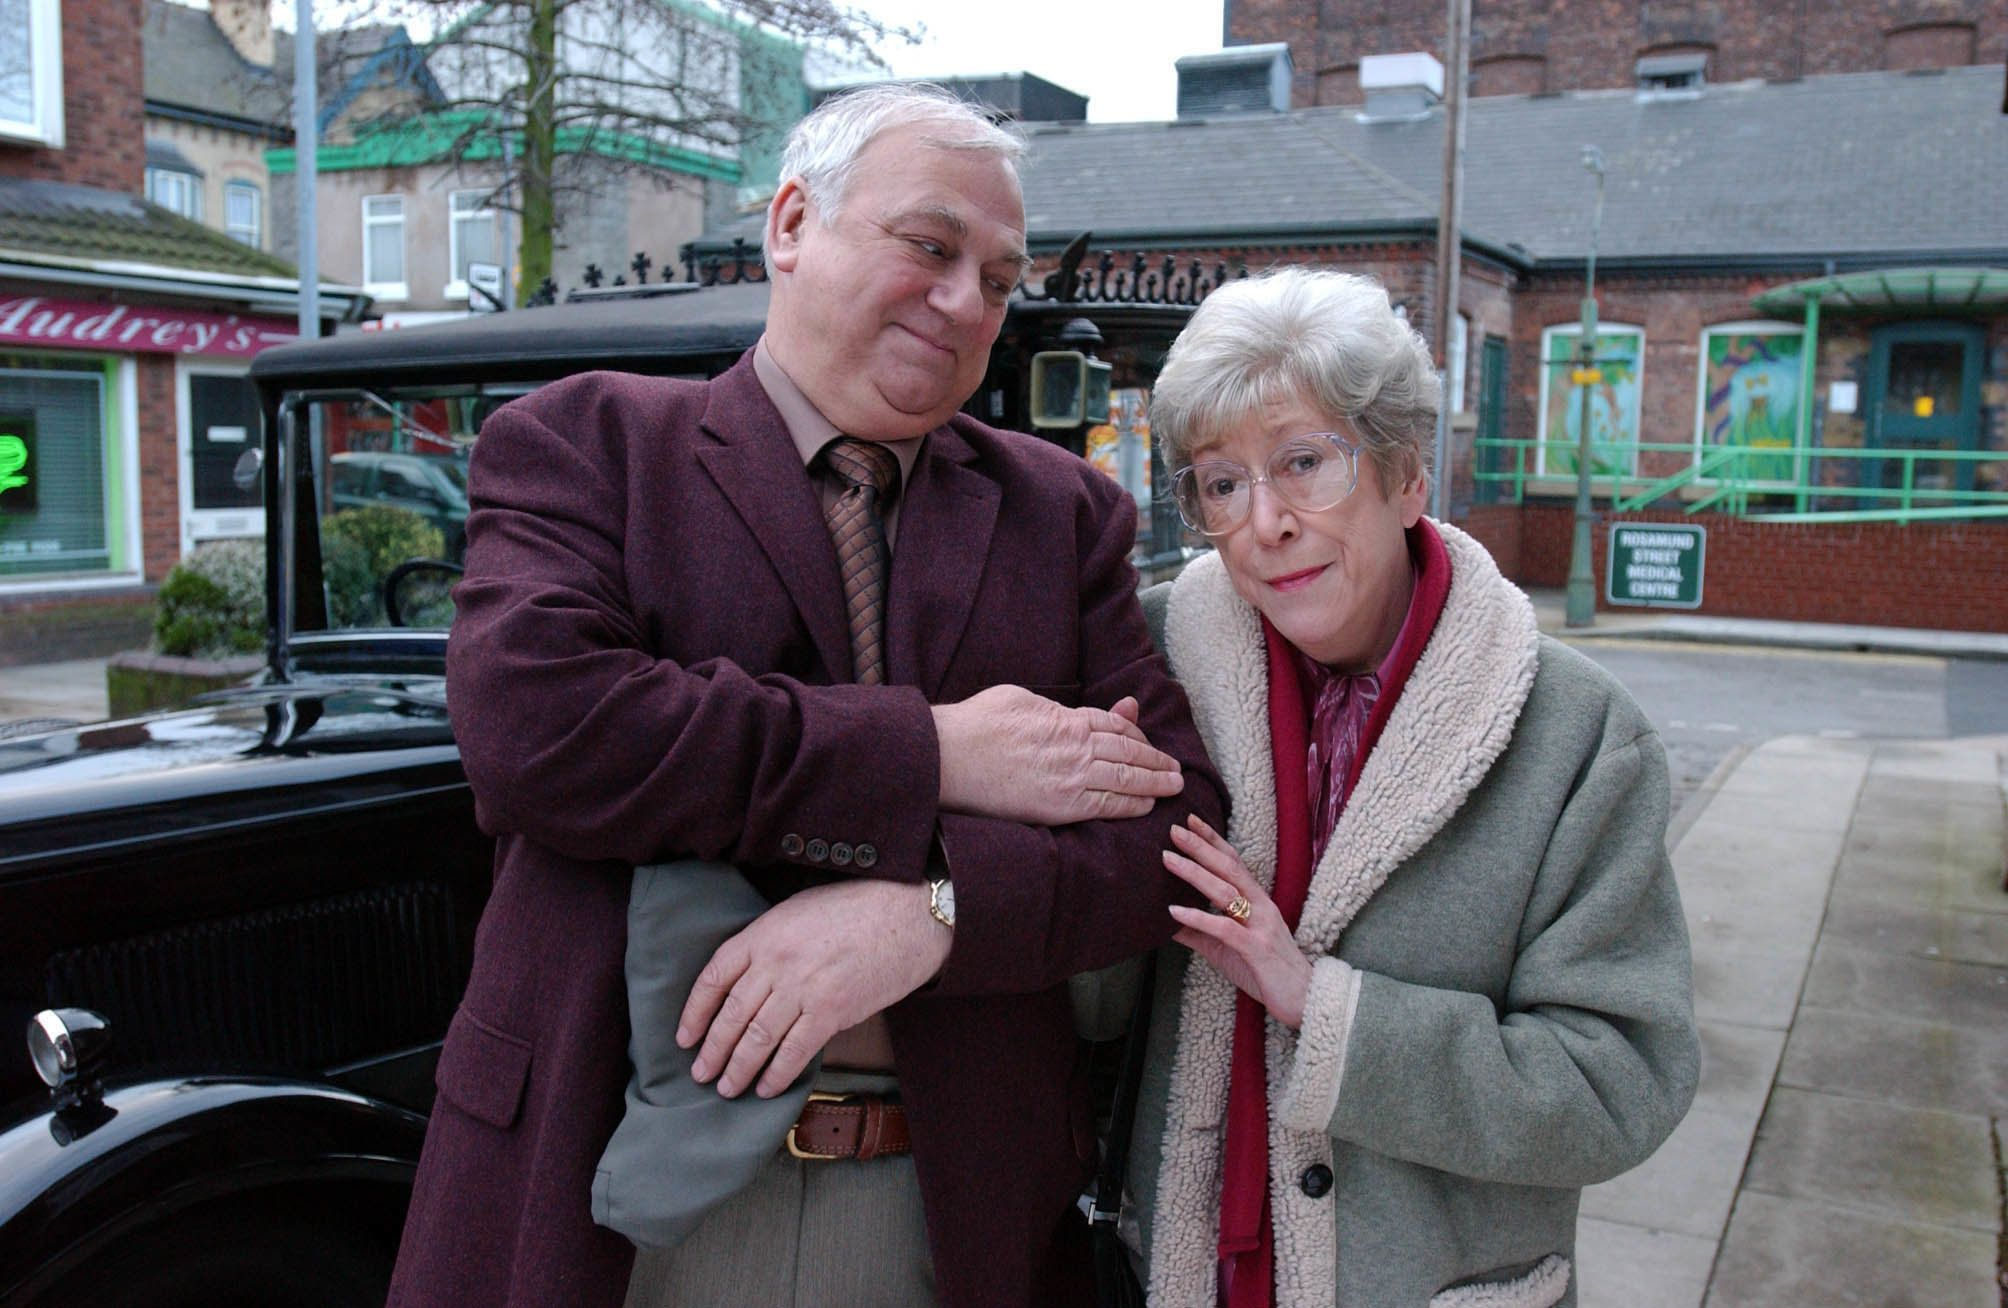 Arnie Shuttleworth and Blanche Hunt (Roy Hudd and Maggie